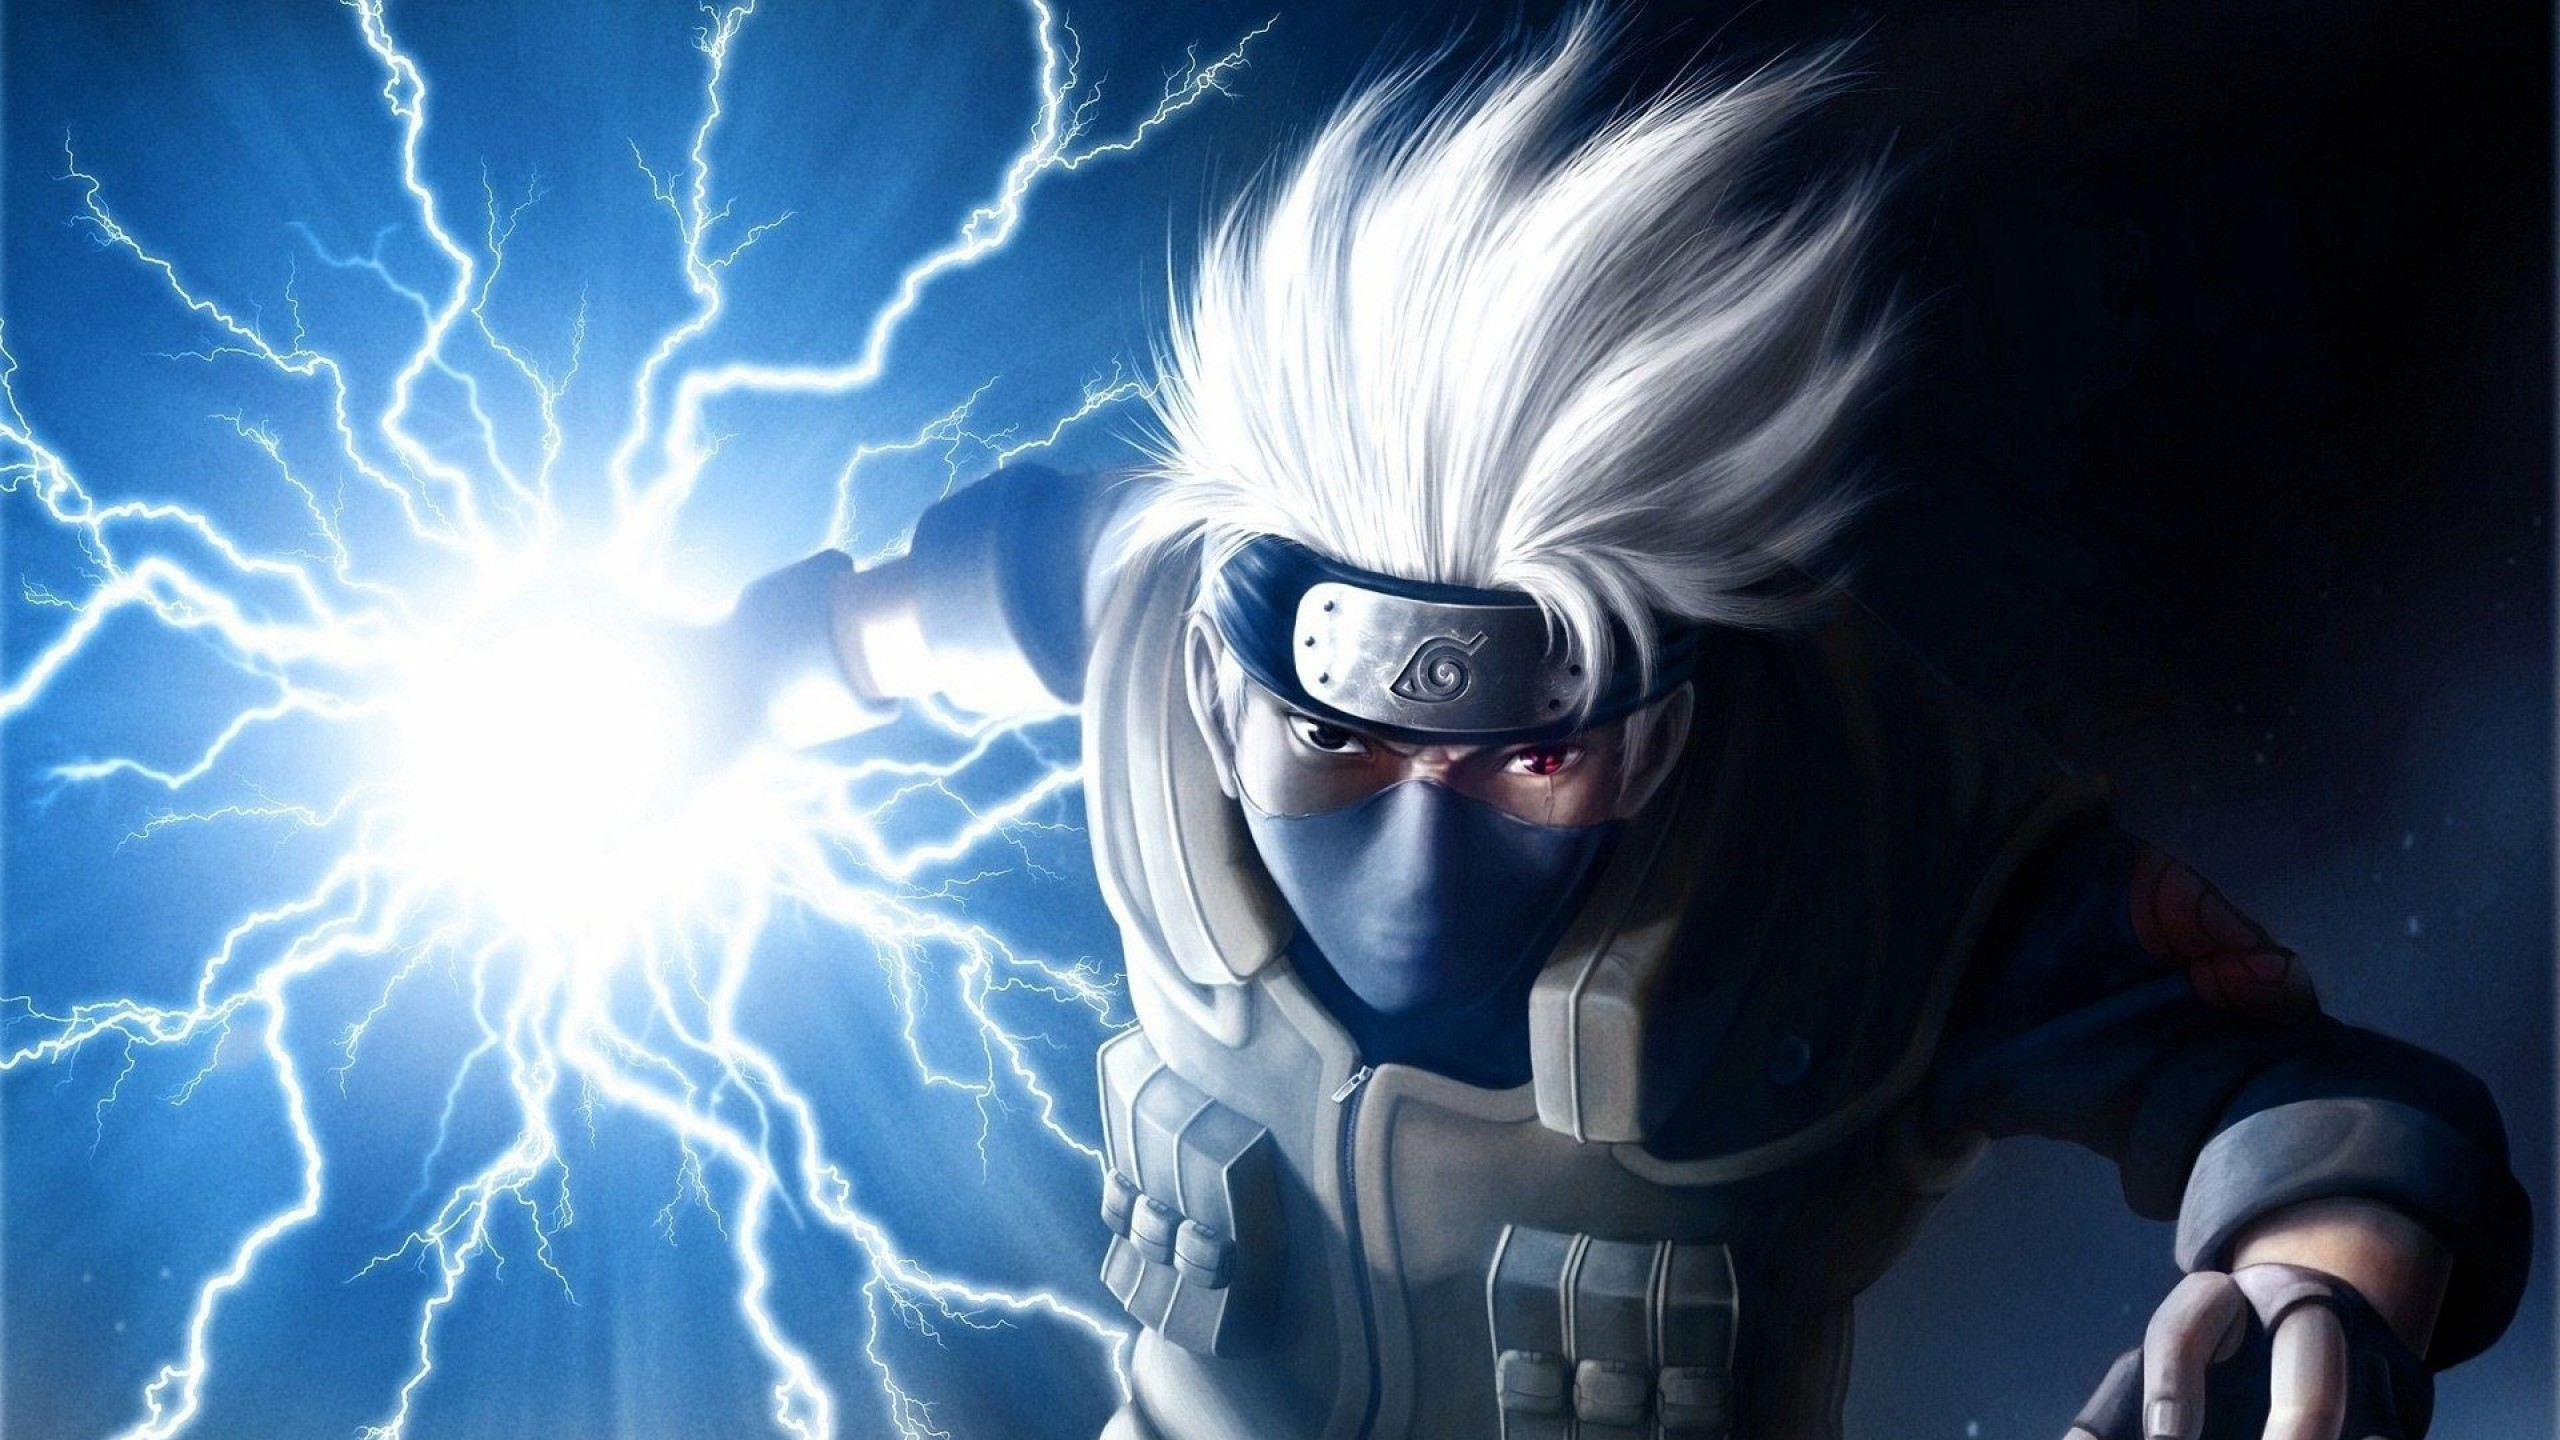 2560x1440 naruto hatake kakashi art images wallpapers hd desktop wallpapers hd high  definition windows 10 colourful images backgrounds download wallpaper free  ...